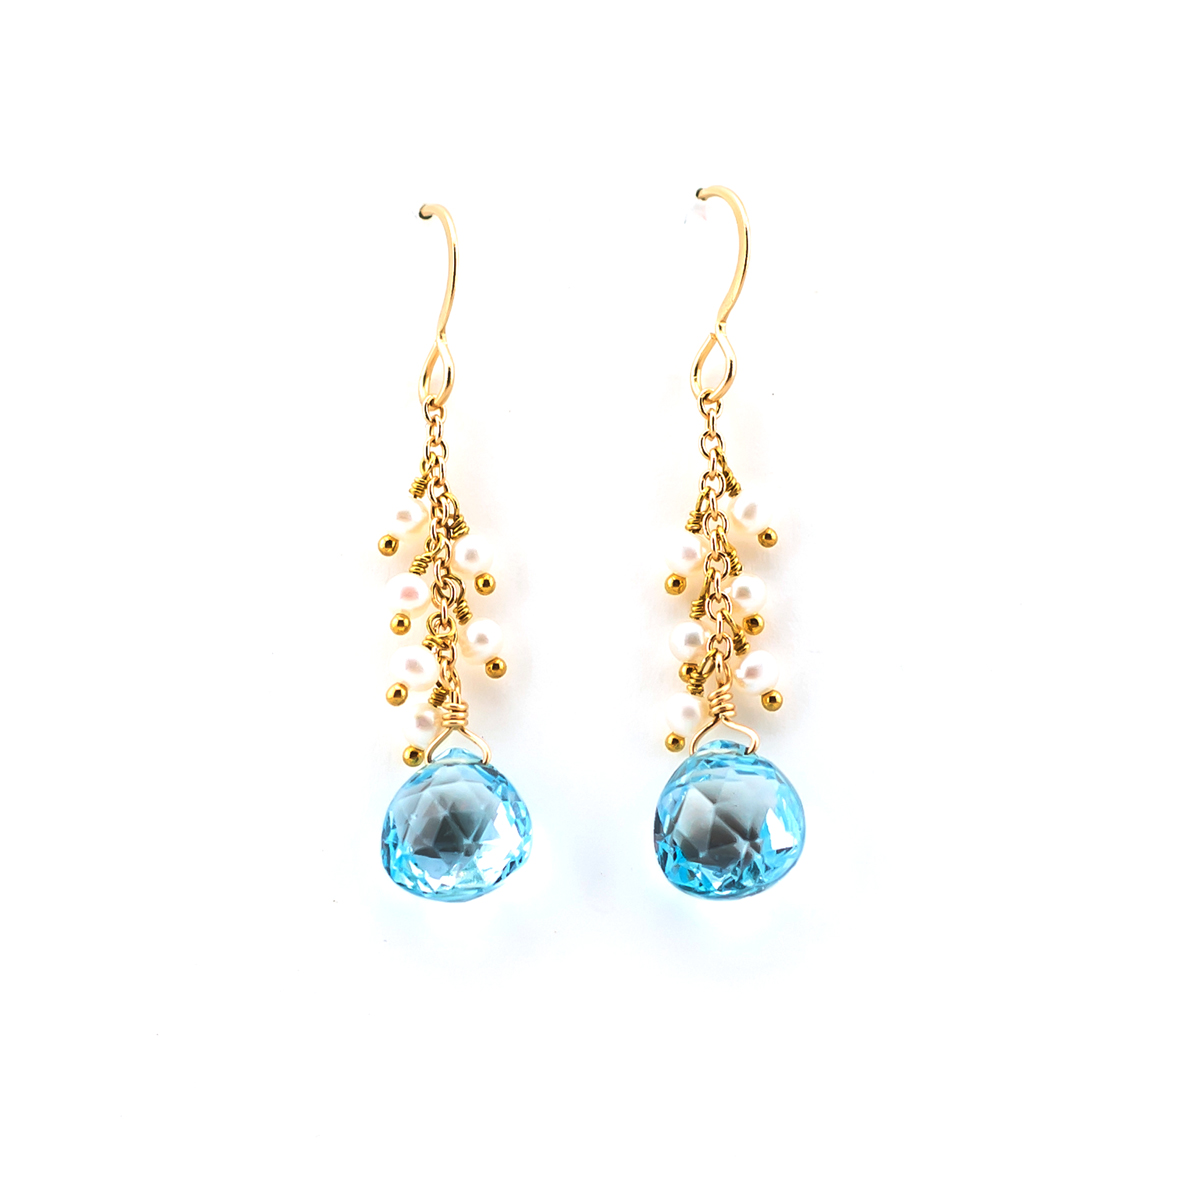 Earrings6.jpg